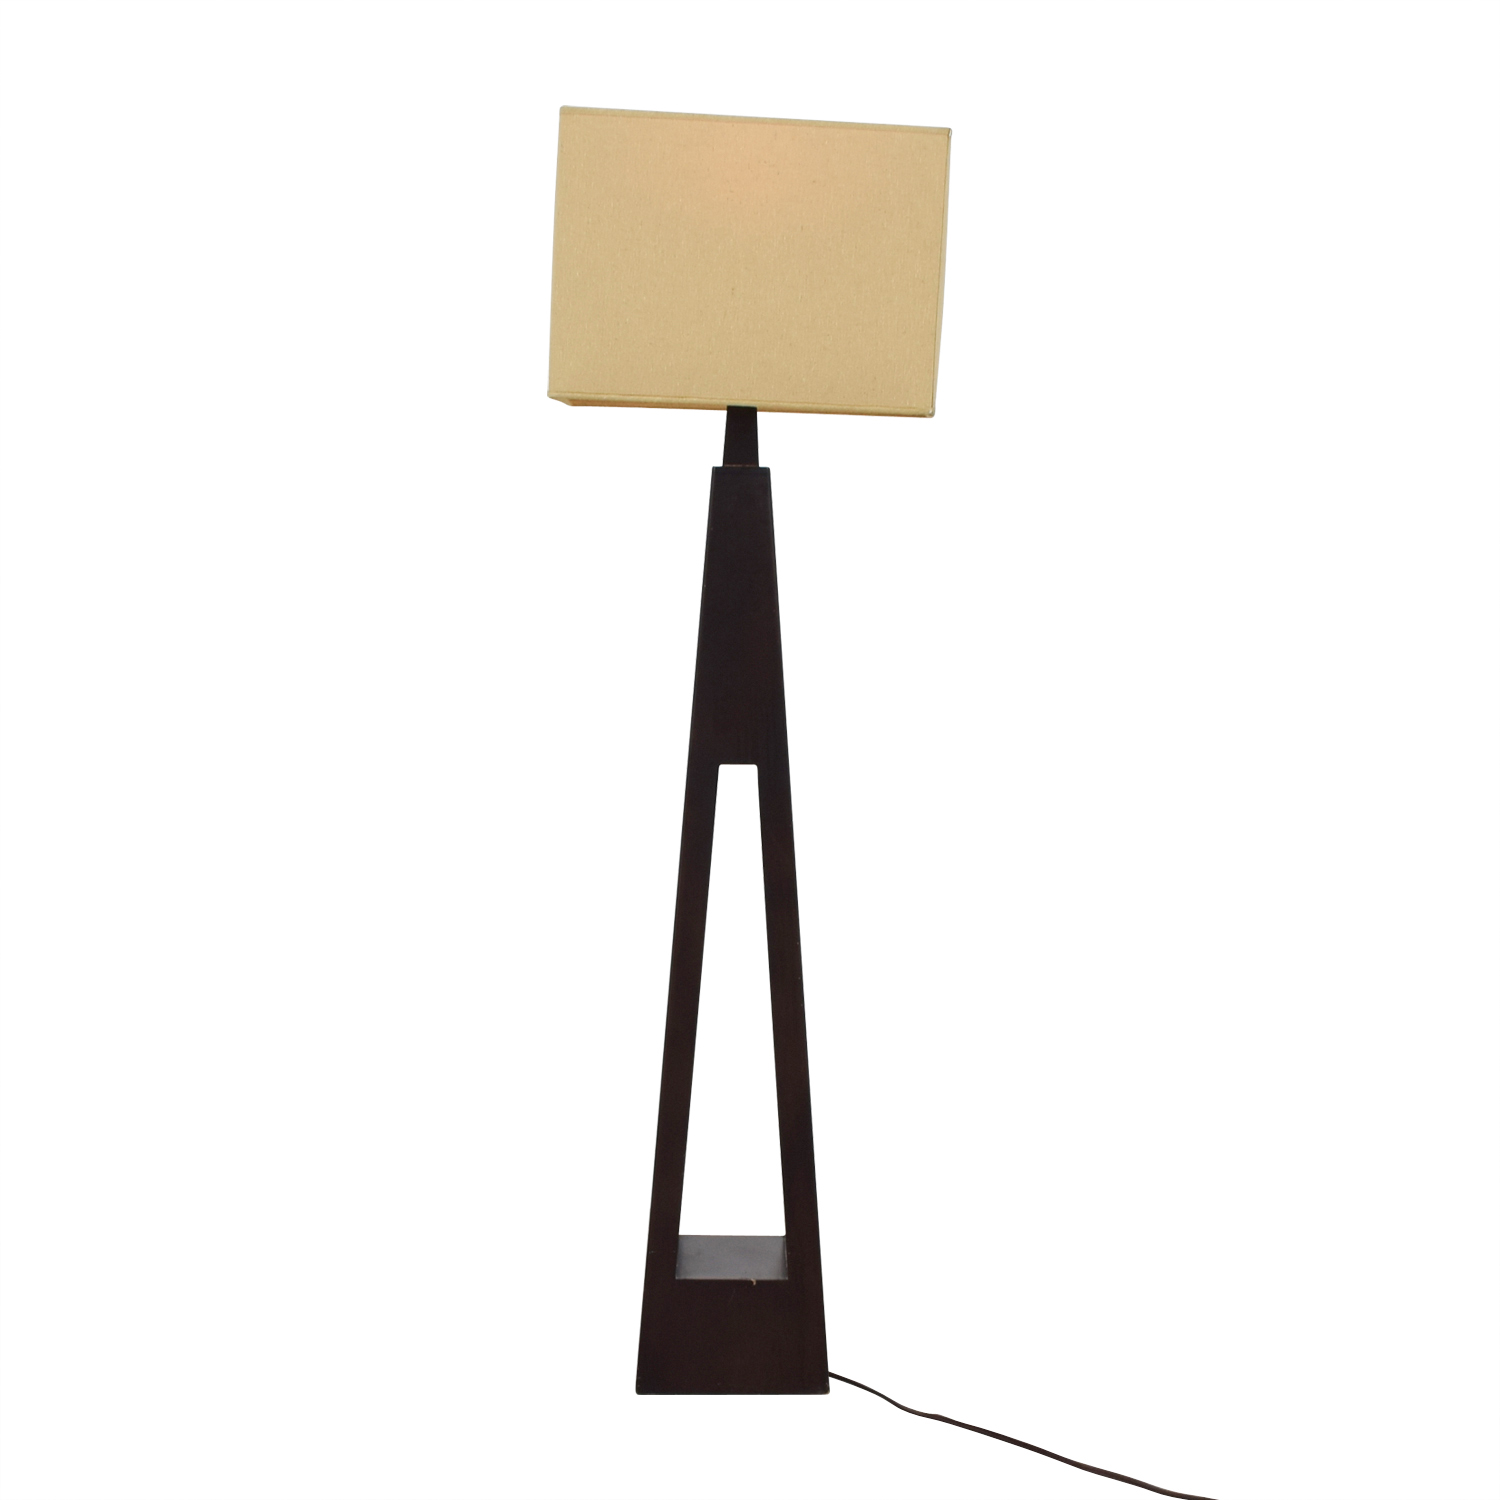 shop Triangular Wood Base Floor Lamp